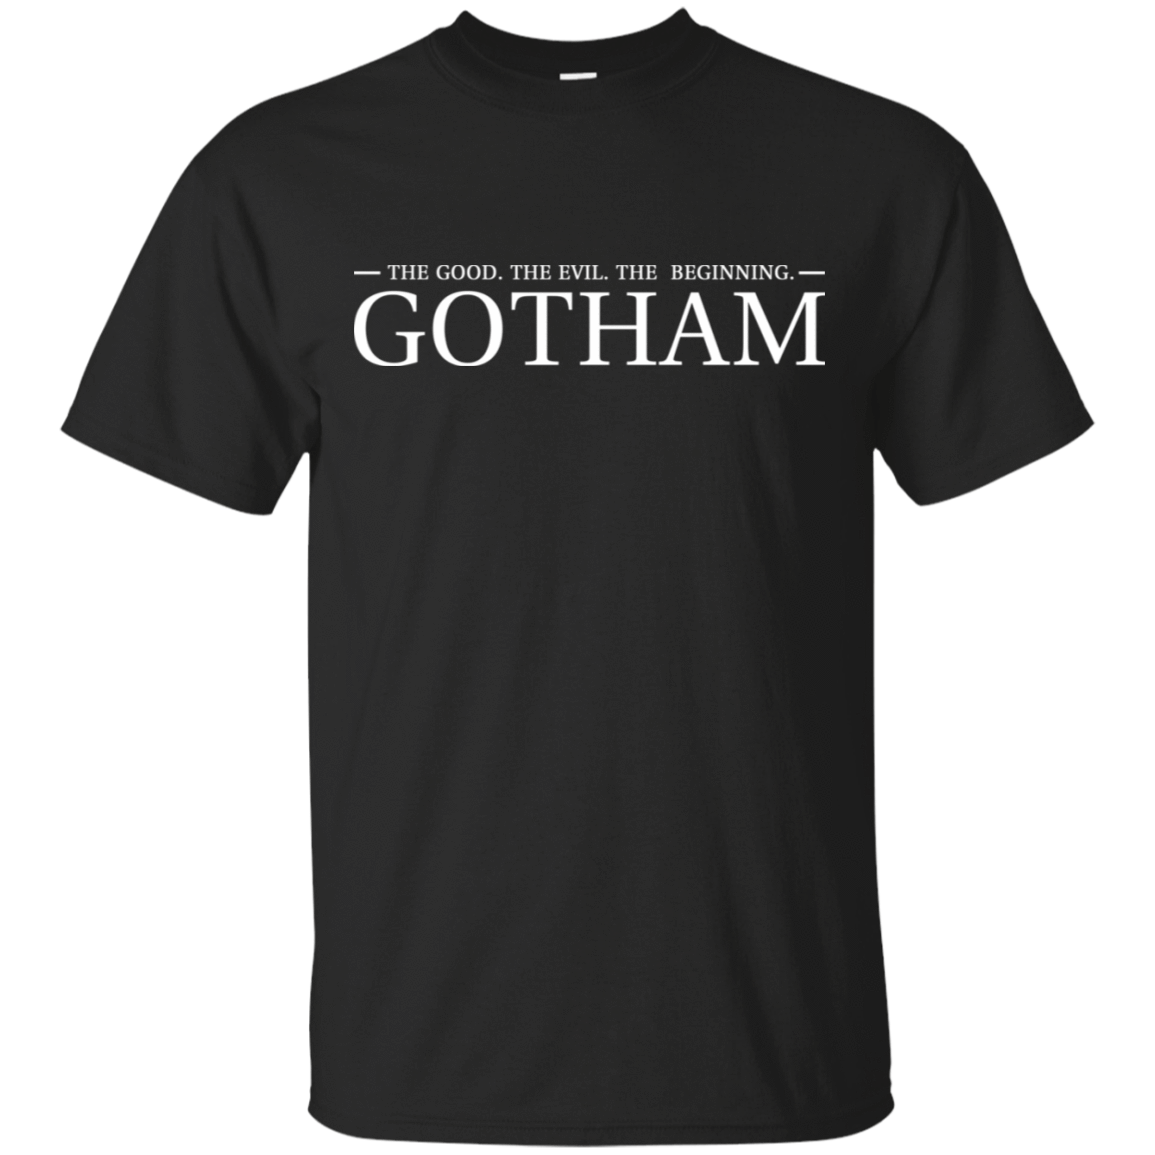 The Good. The Evil. The Beginning. Gotham 22-113-74005250-252 - Tee Ript